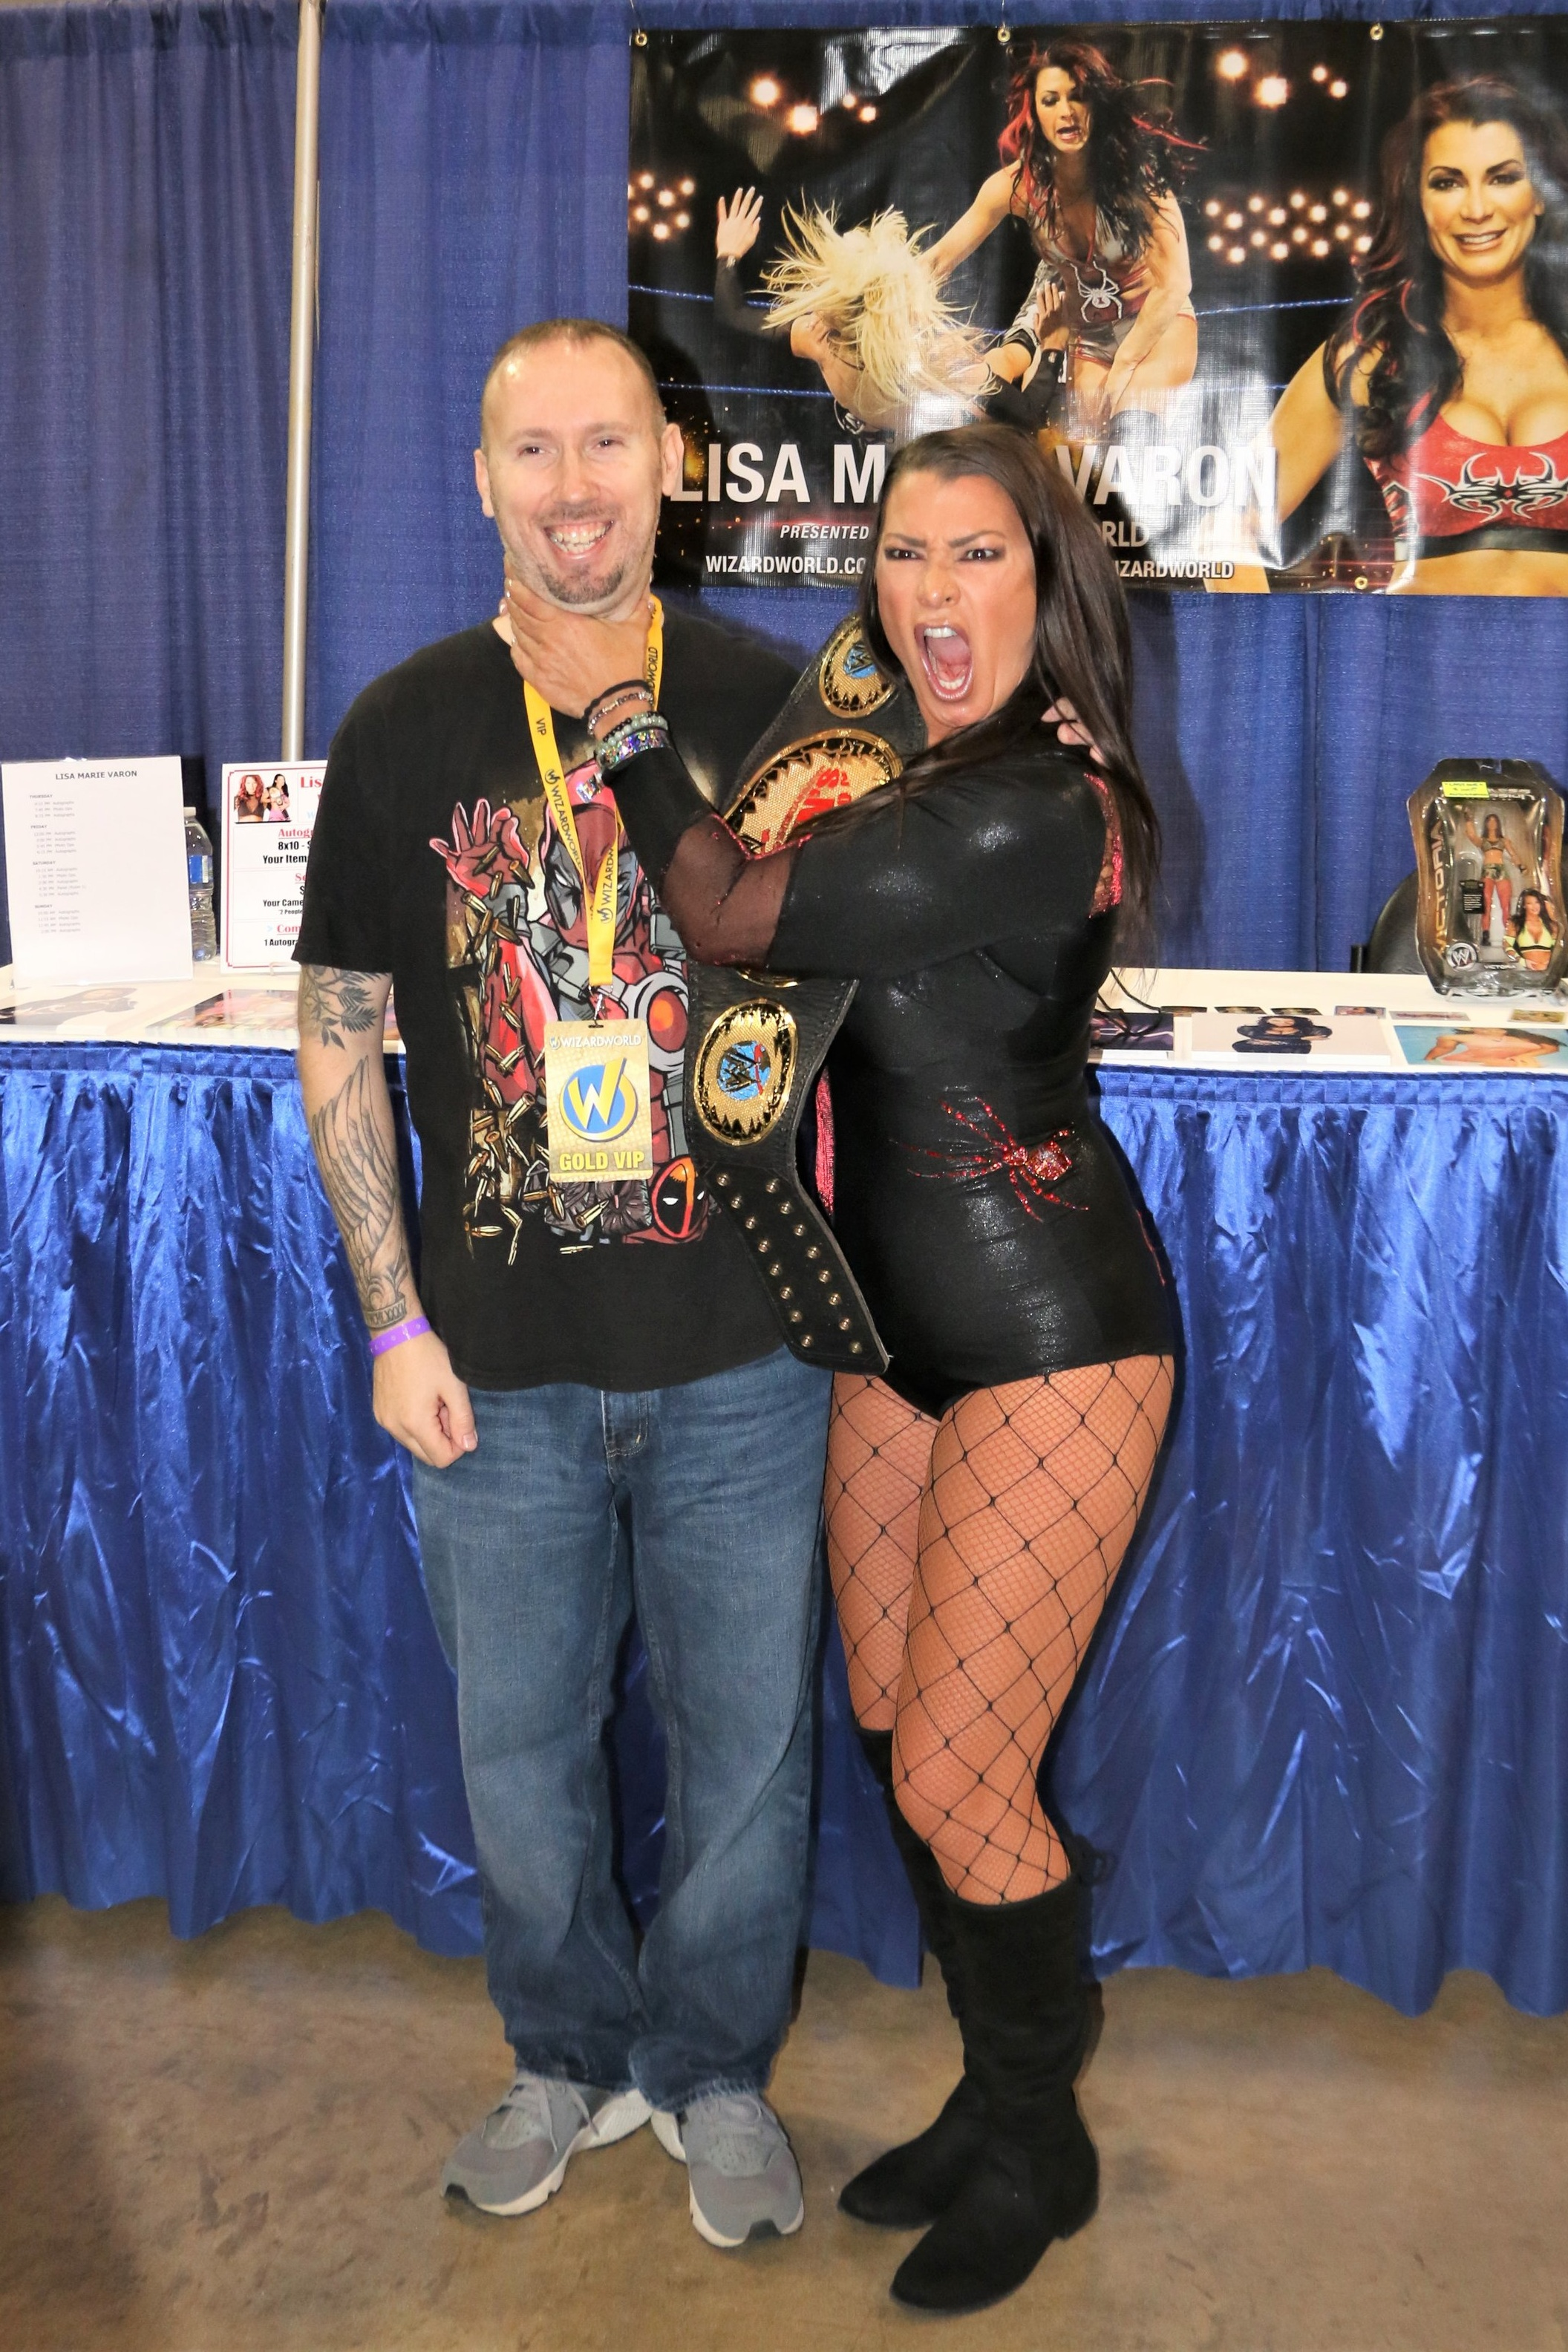 Lisa Marie Varon poses with a fan at Wizard World Chicago in Rosemont on August 23.  (Photo by Mike Pankow)